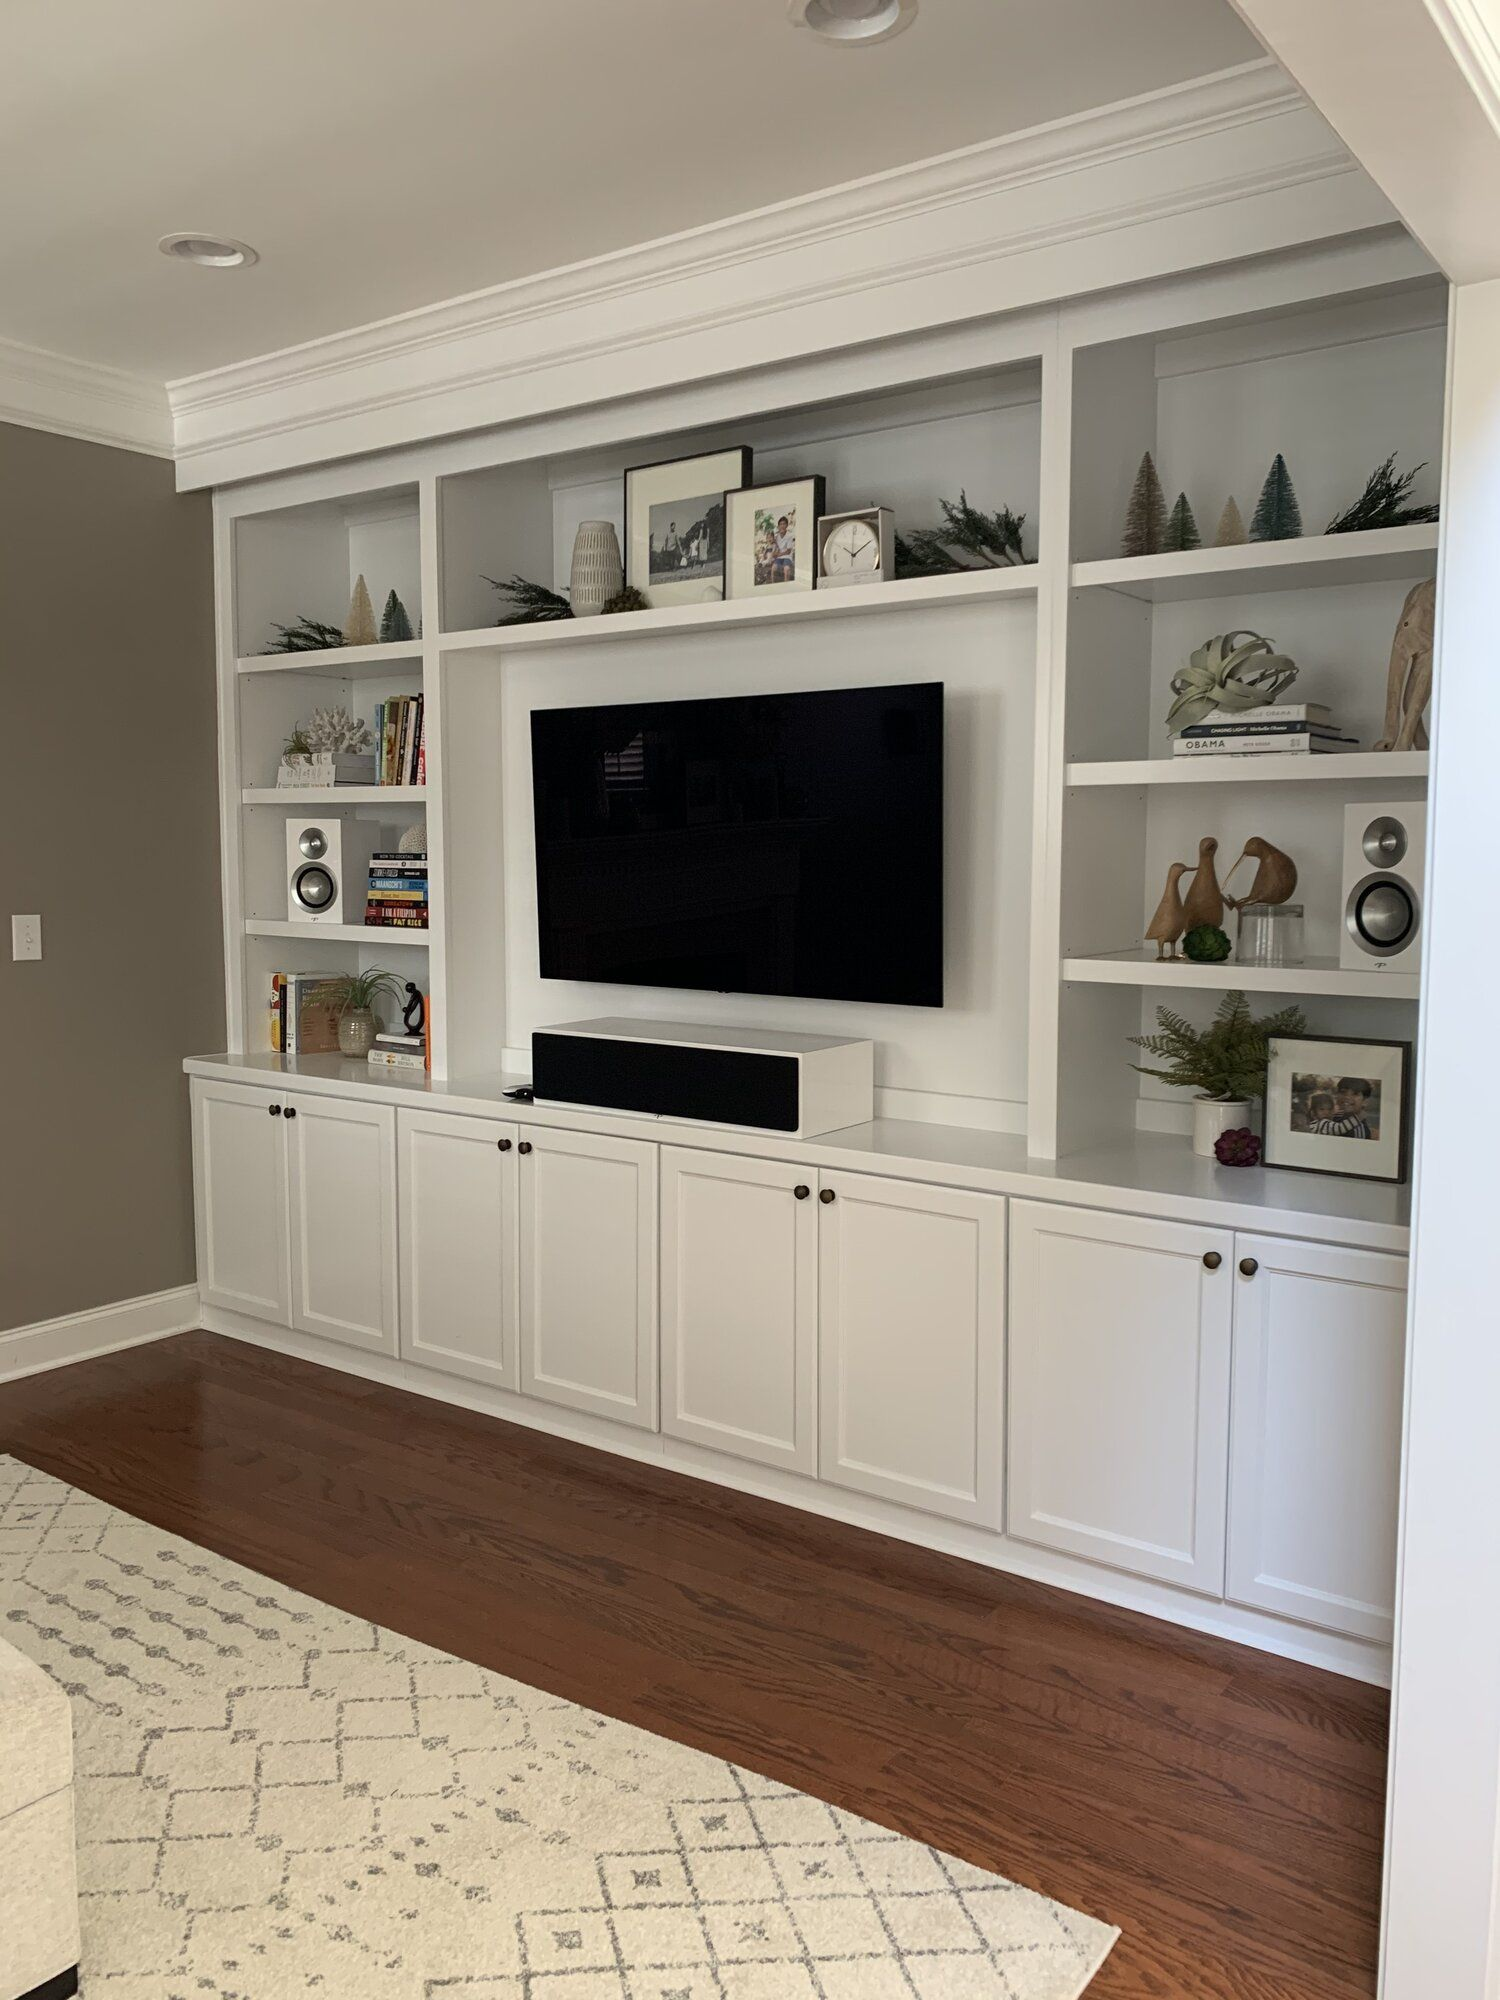 Before & After Projects - Raleigh, Durham, Cary, Chapel Hill — Woodmaster Custom Cabinets